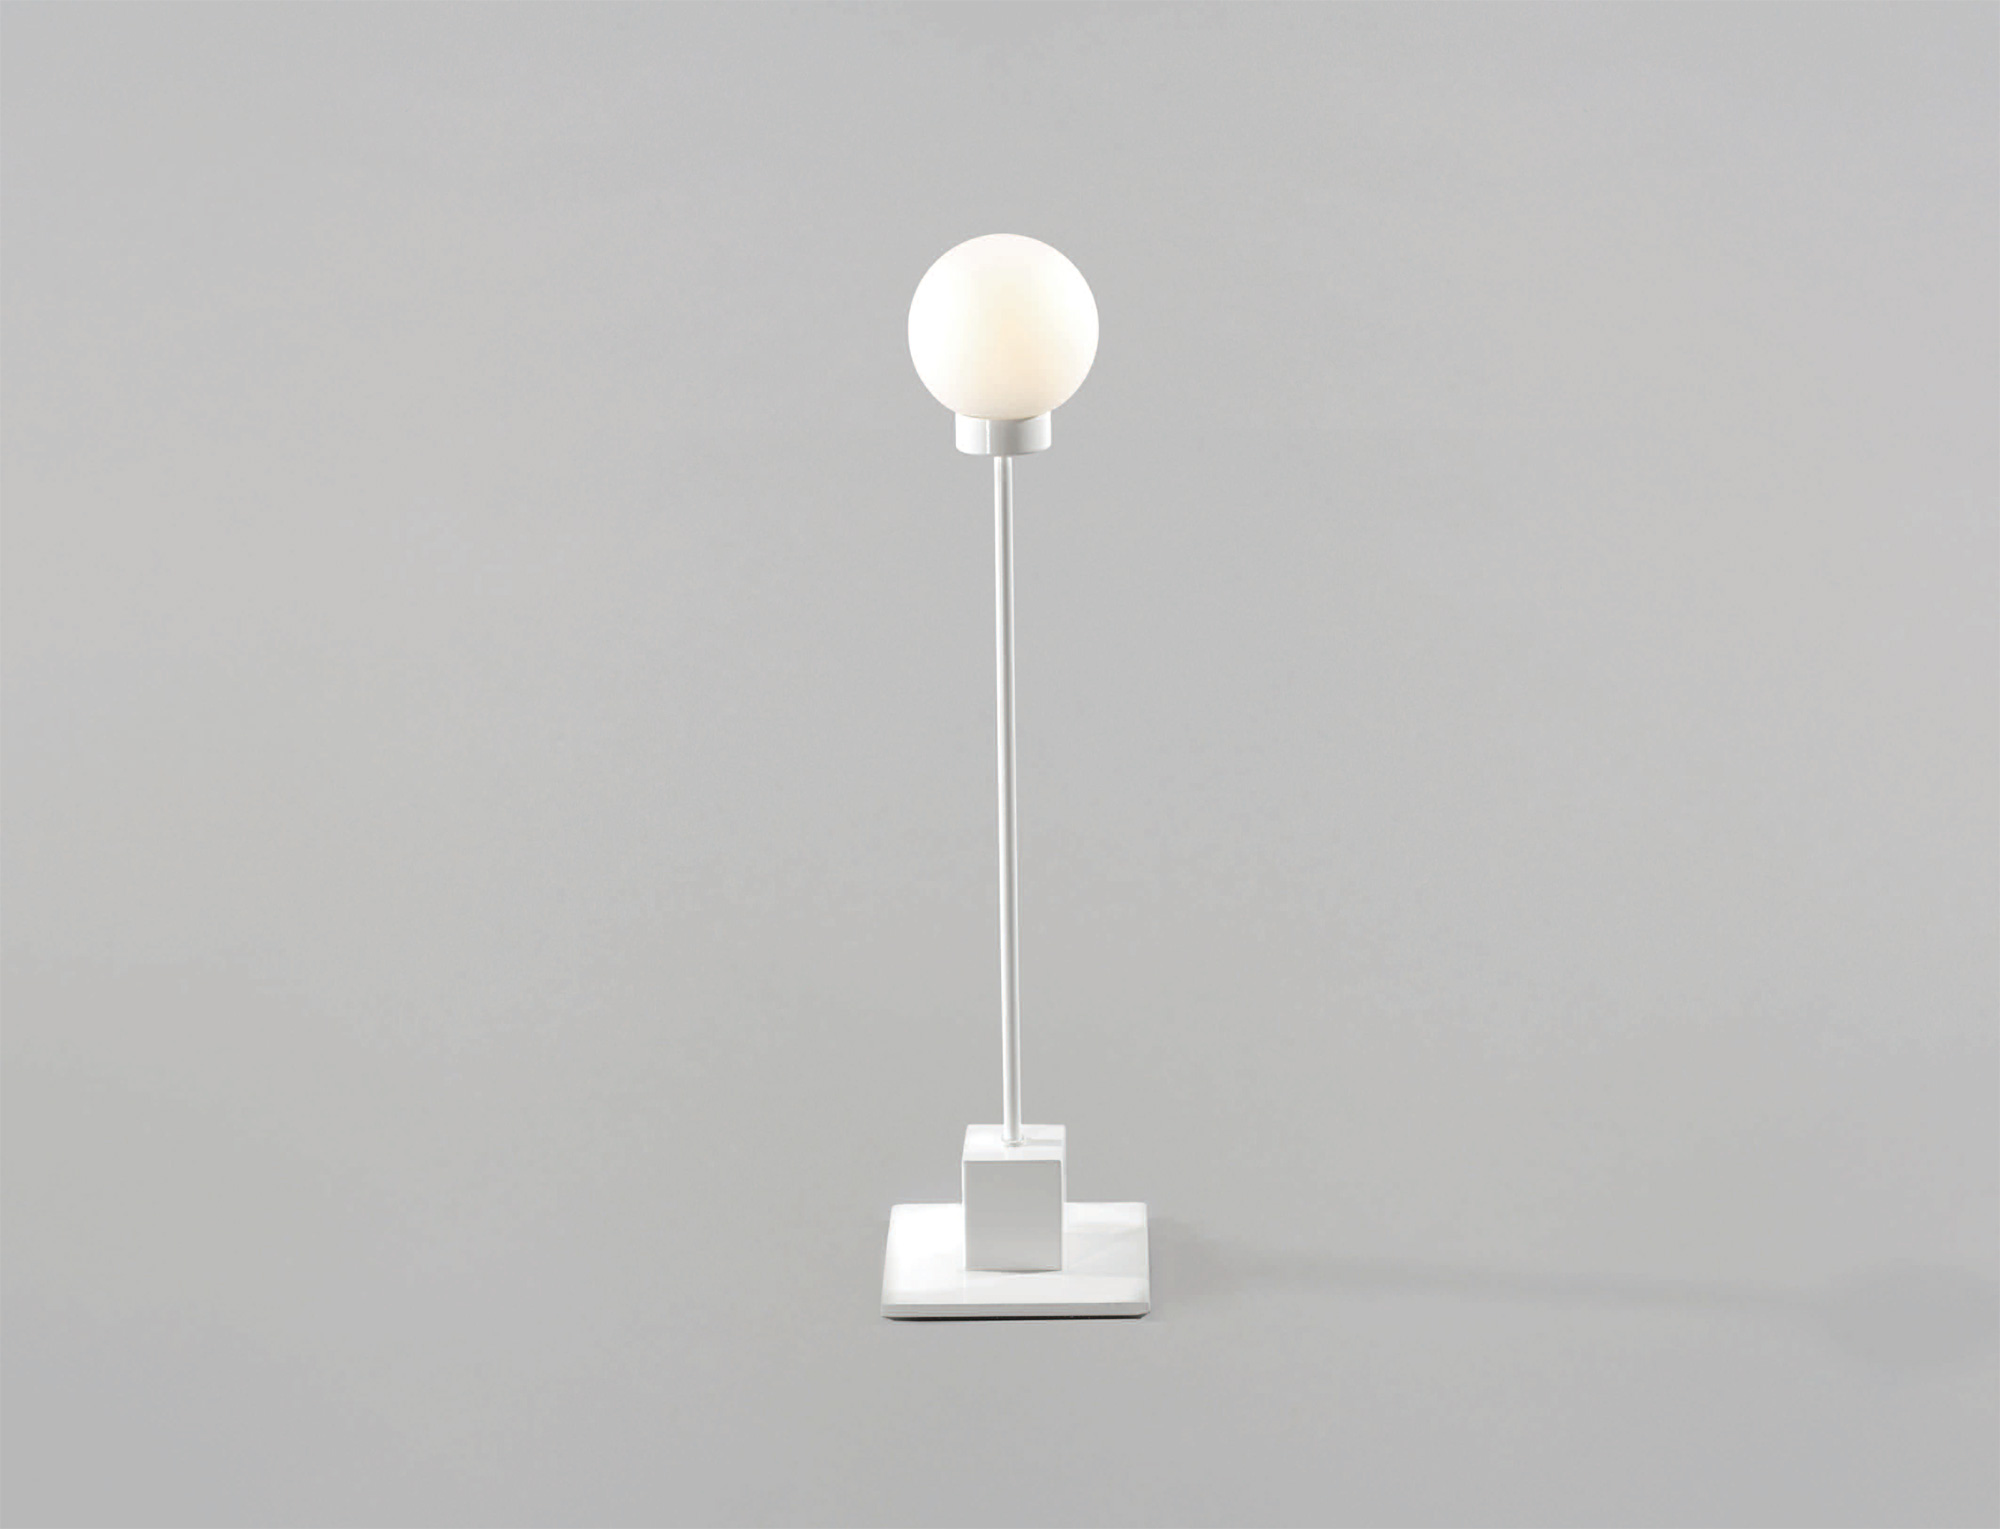 John Rizzi and Brooks Rorke Desktop Lamp